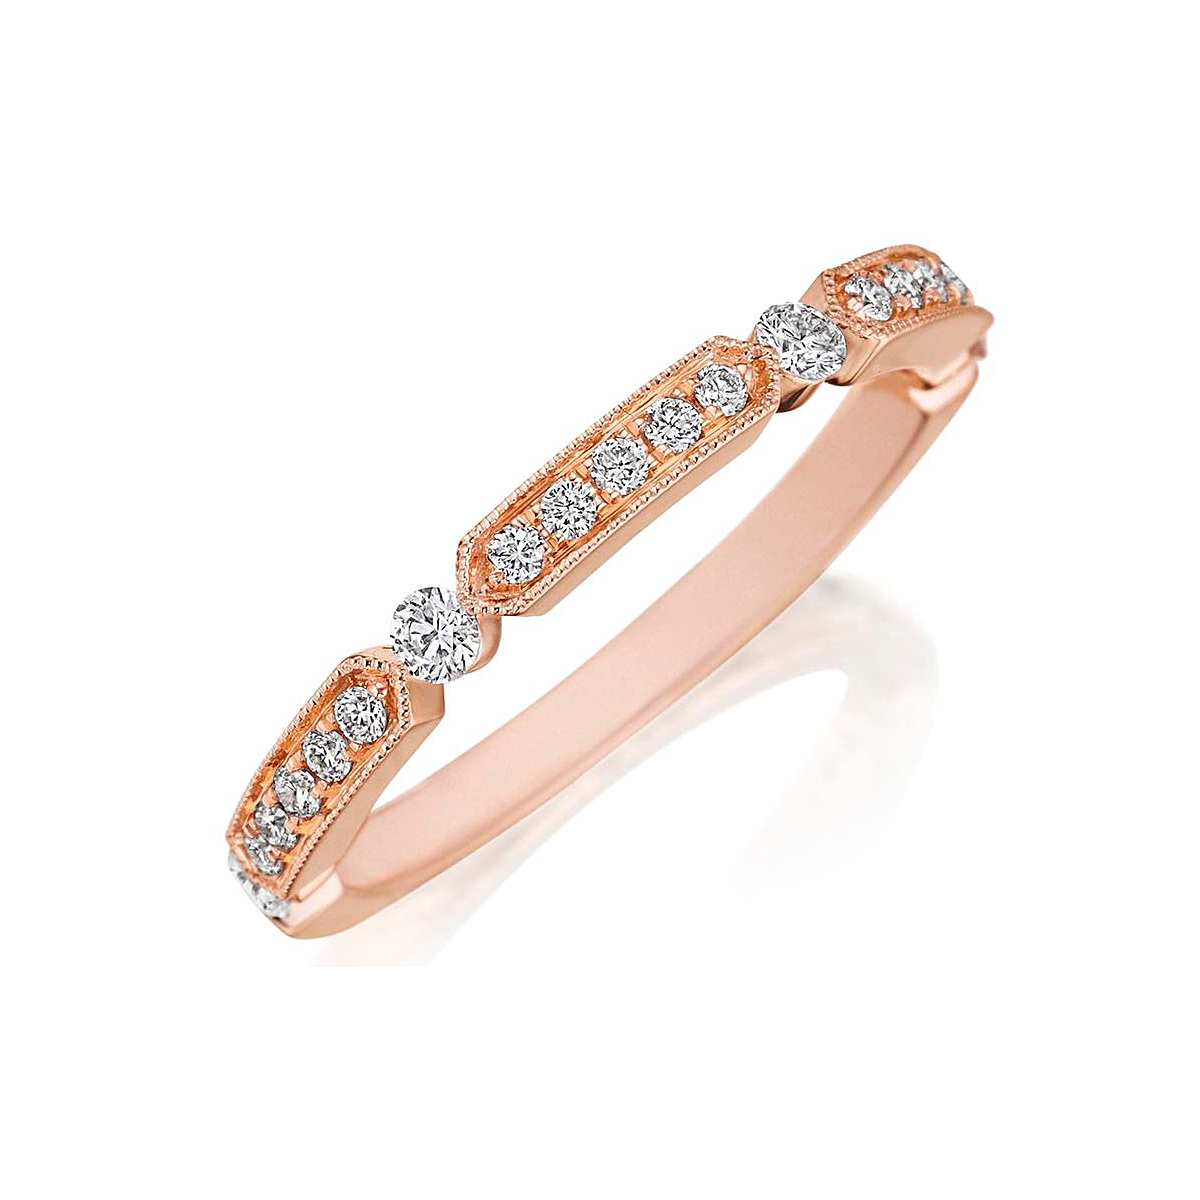 Henri Daussi 14 Karat Rose Gold Diamond Wedding Band